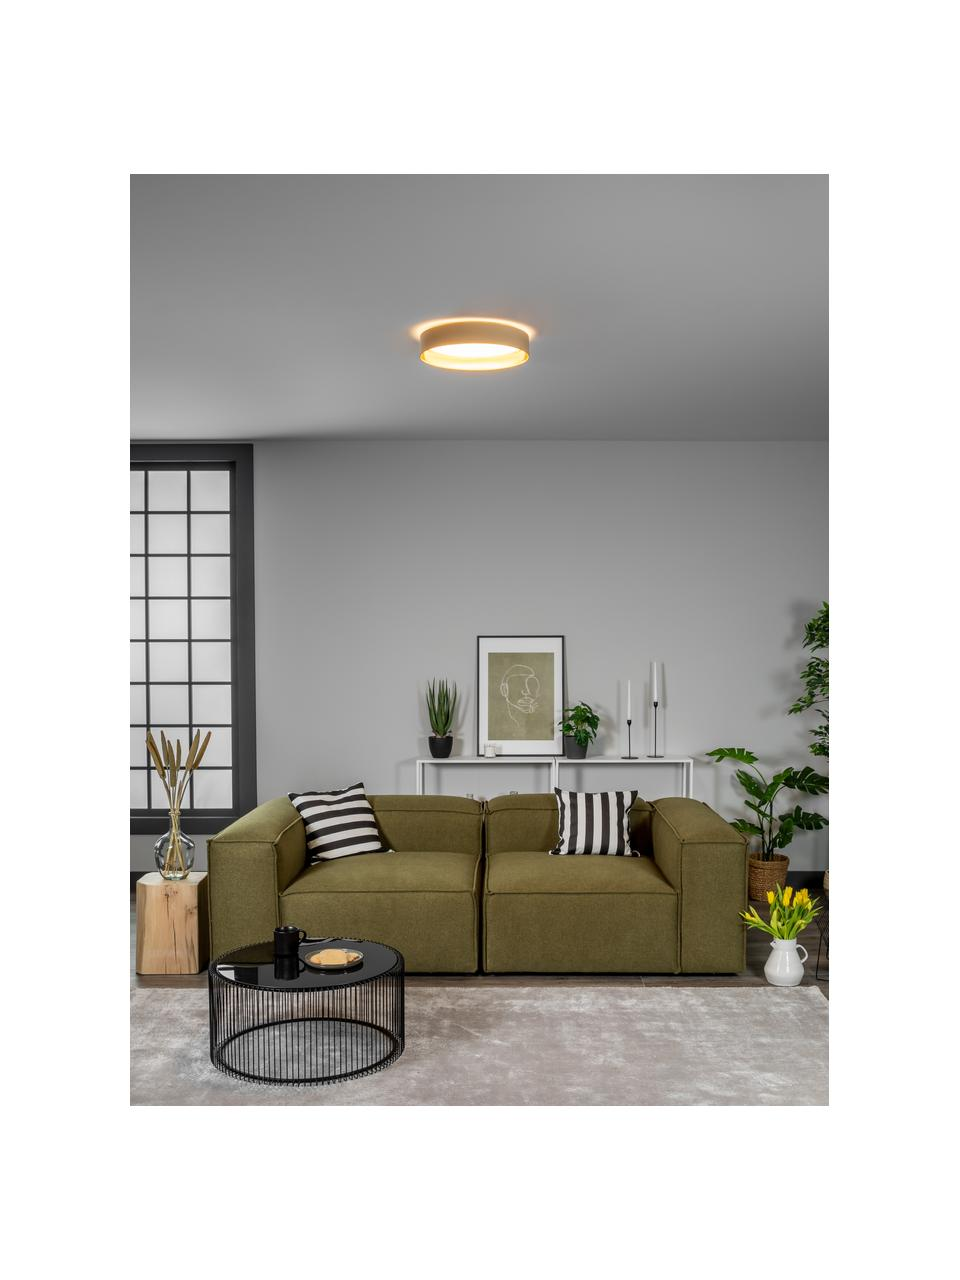 LED-Deckenleuchte Mallory in Taupe, Diffusorscheibe: Kunststoff, Taupe, Ø 41 x H 10 cm